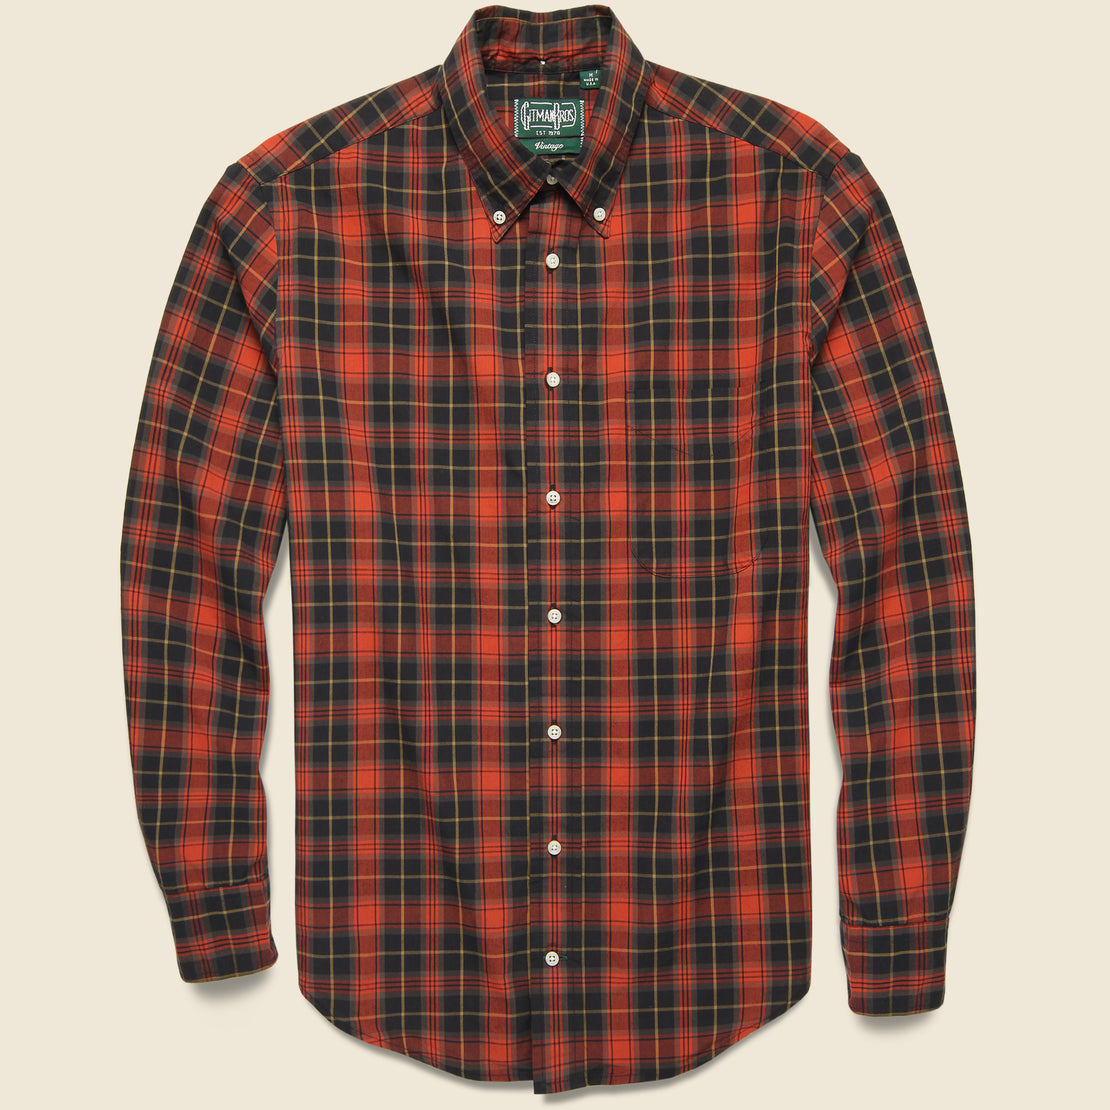 Gitman Vintage Beefy Poplin Shirt - Black/Red